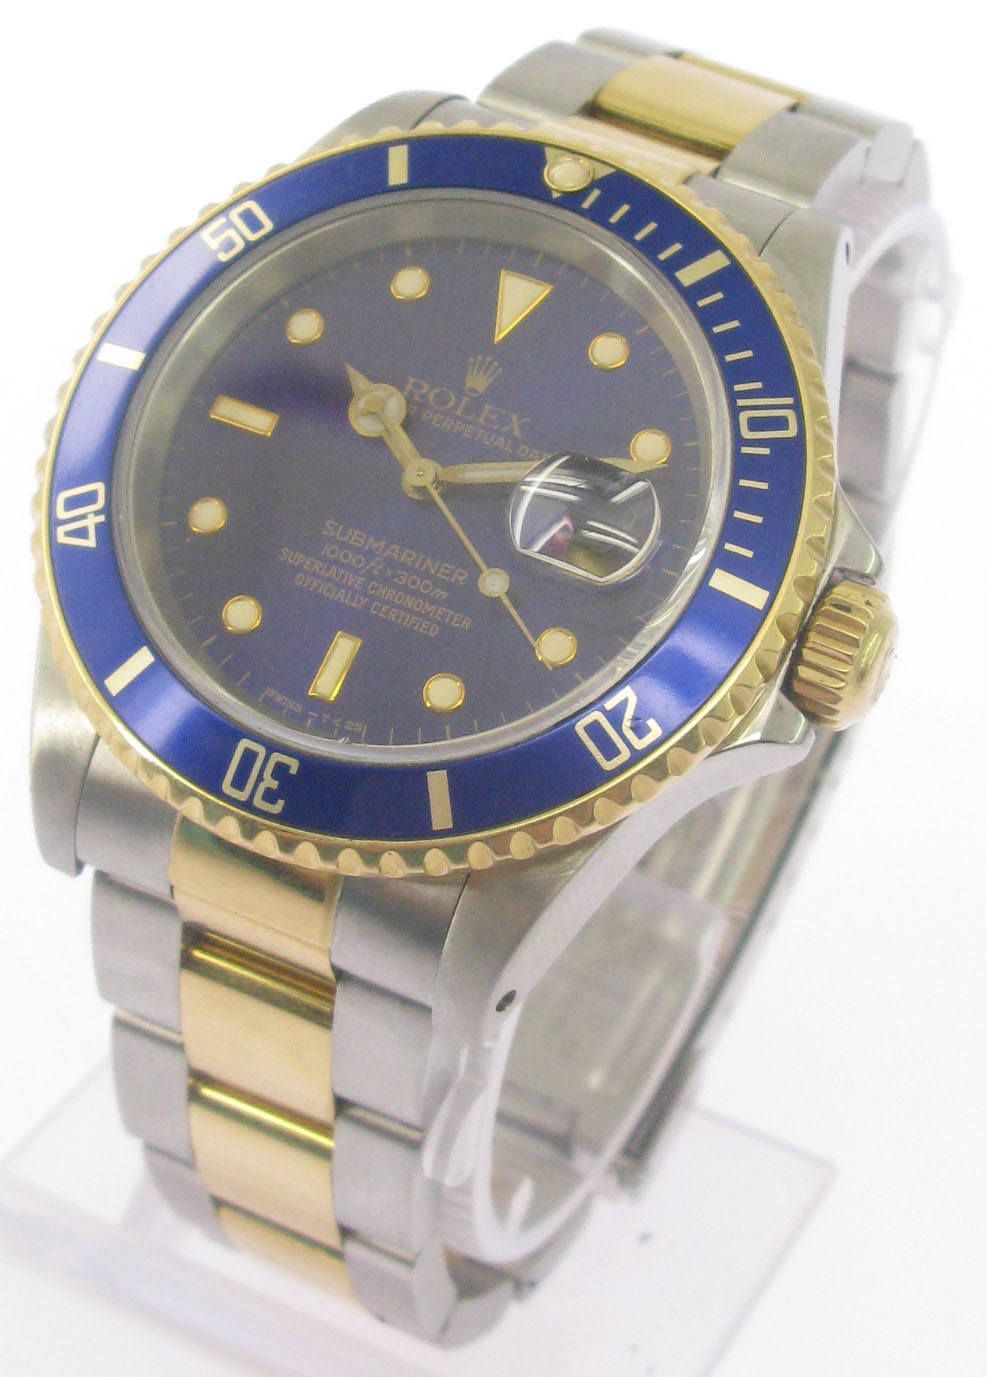 rolex submariner stahl gold blau zertifikat von 1989 ebay. Black Bedroom Furniture Sets. Home Design Ideas